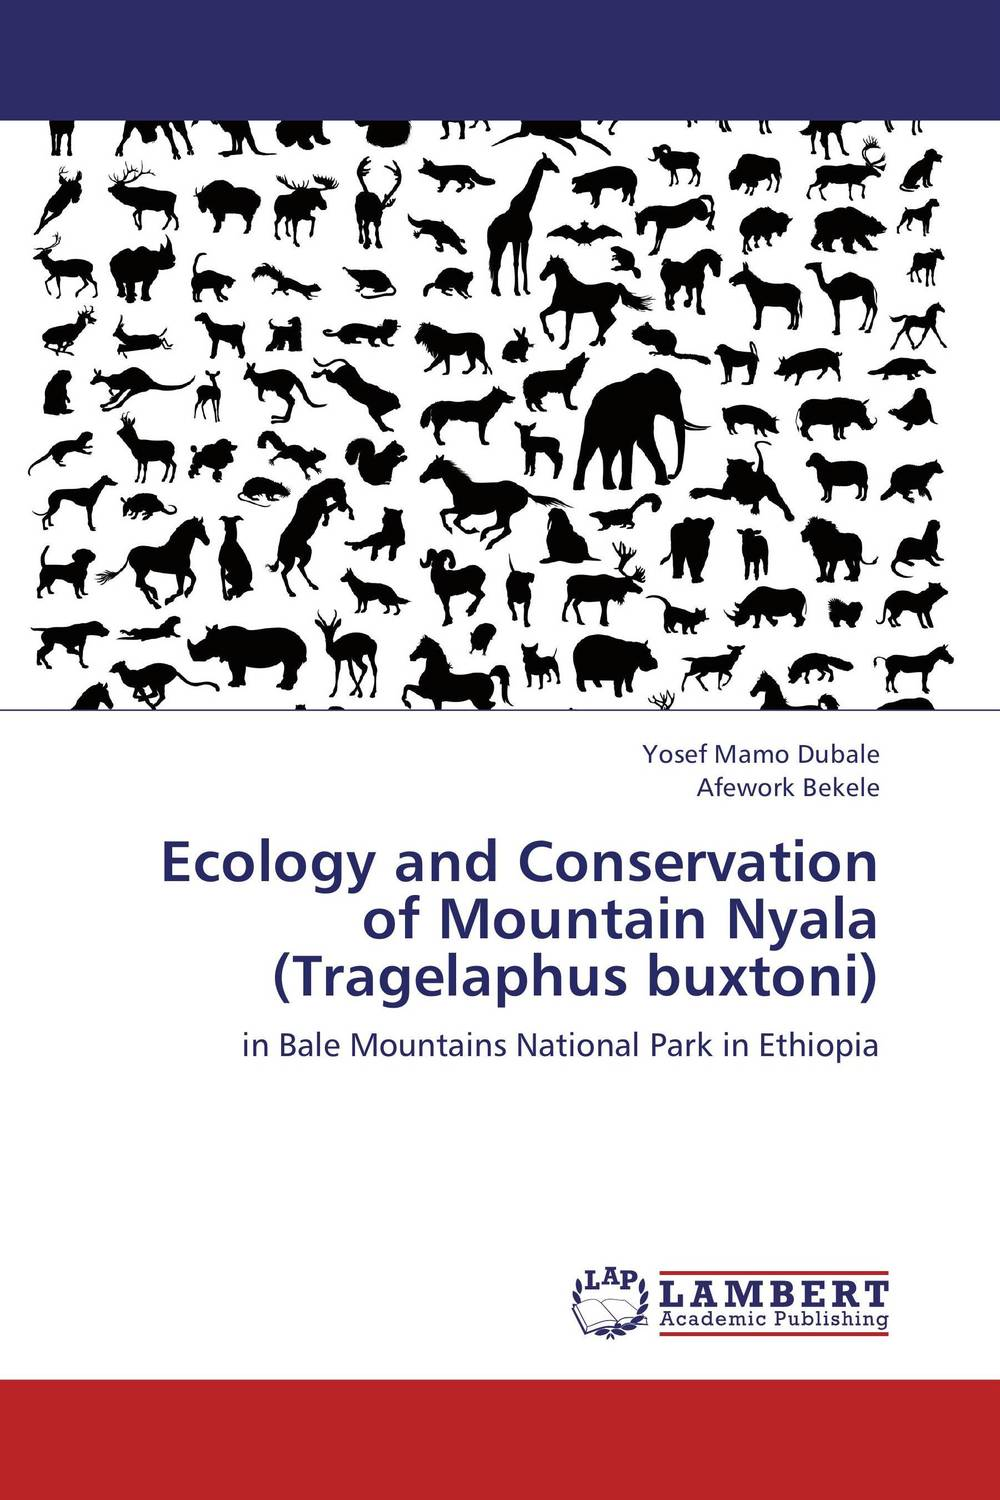 Ecology and Conservation of Mountain Nyala (Tragelaphus buxtoni) tigers of the world second edition the science politics and conservation of panthera tigris noyes series in animal behavior ecology conservation and management